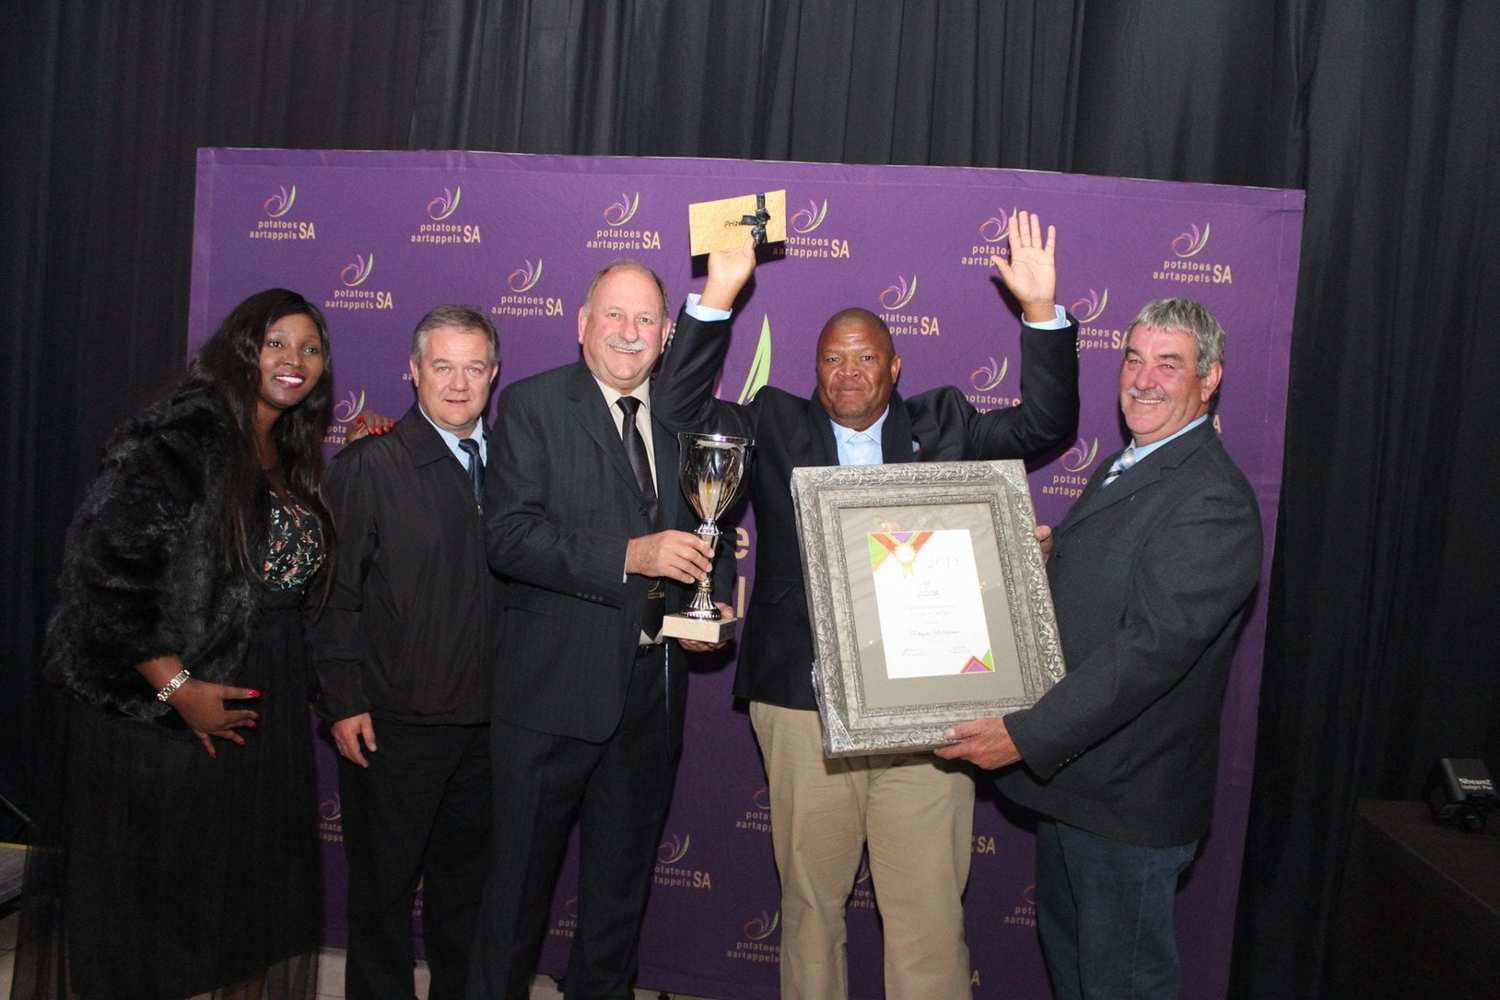 Phophi Raletjana celebrates after being announced as Potatoes South Africa's (PSA) Enterprise Development Farmer of the Year. From the left is Nomvula Xaba (PSA Transformation Manager), Dr. André Jooste (CEO of PSA) JF van der Merwe (Chairperson of PSA), Raletjena and Bernhardt du Toit (the Chairperson of PSA's Transformation Committee).